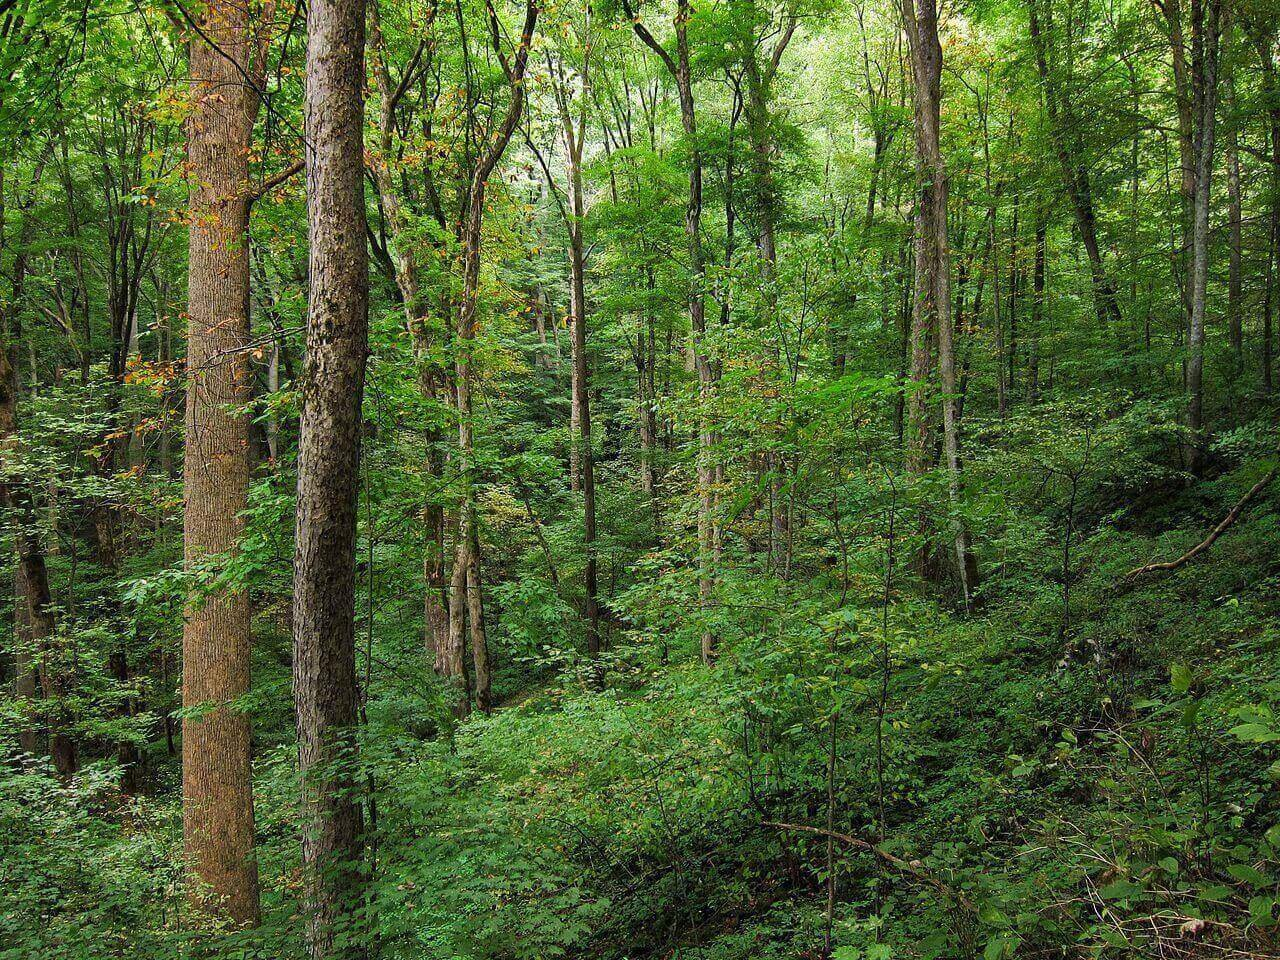 1280px-Appalachian_Cove_forest_on_Baxter_Creek_Trail_in_Great_Smoky_Mountains_National_Park-large